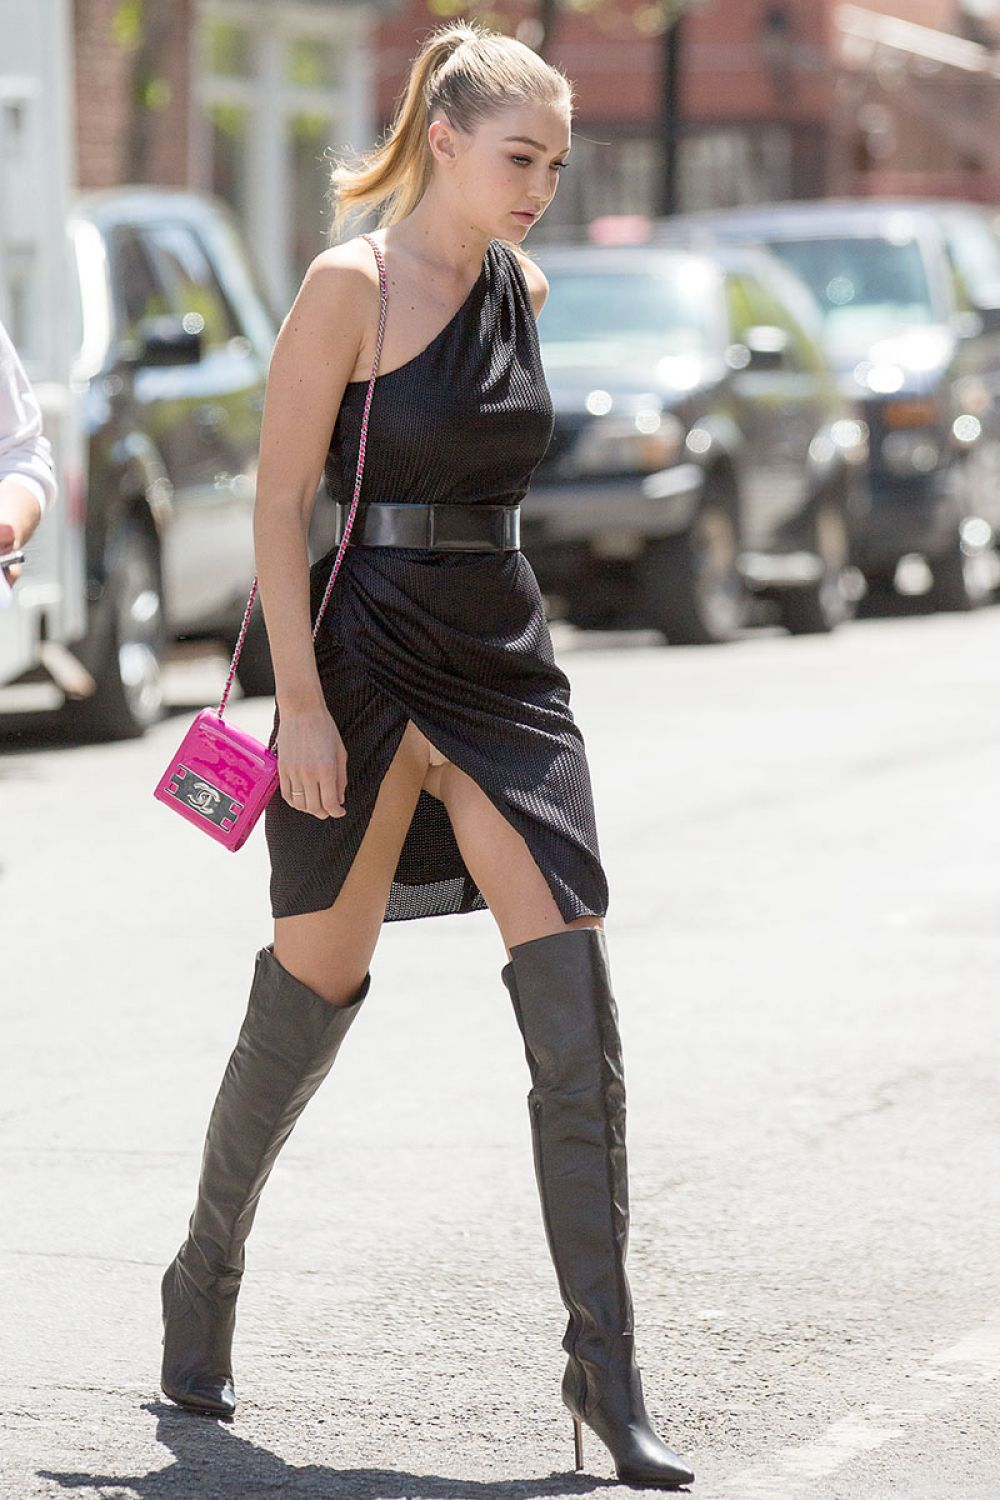 GIG HADID Out and About in New York 04/29/2015